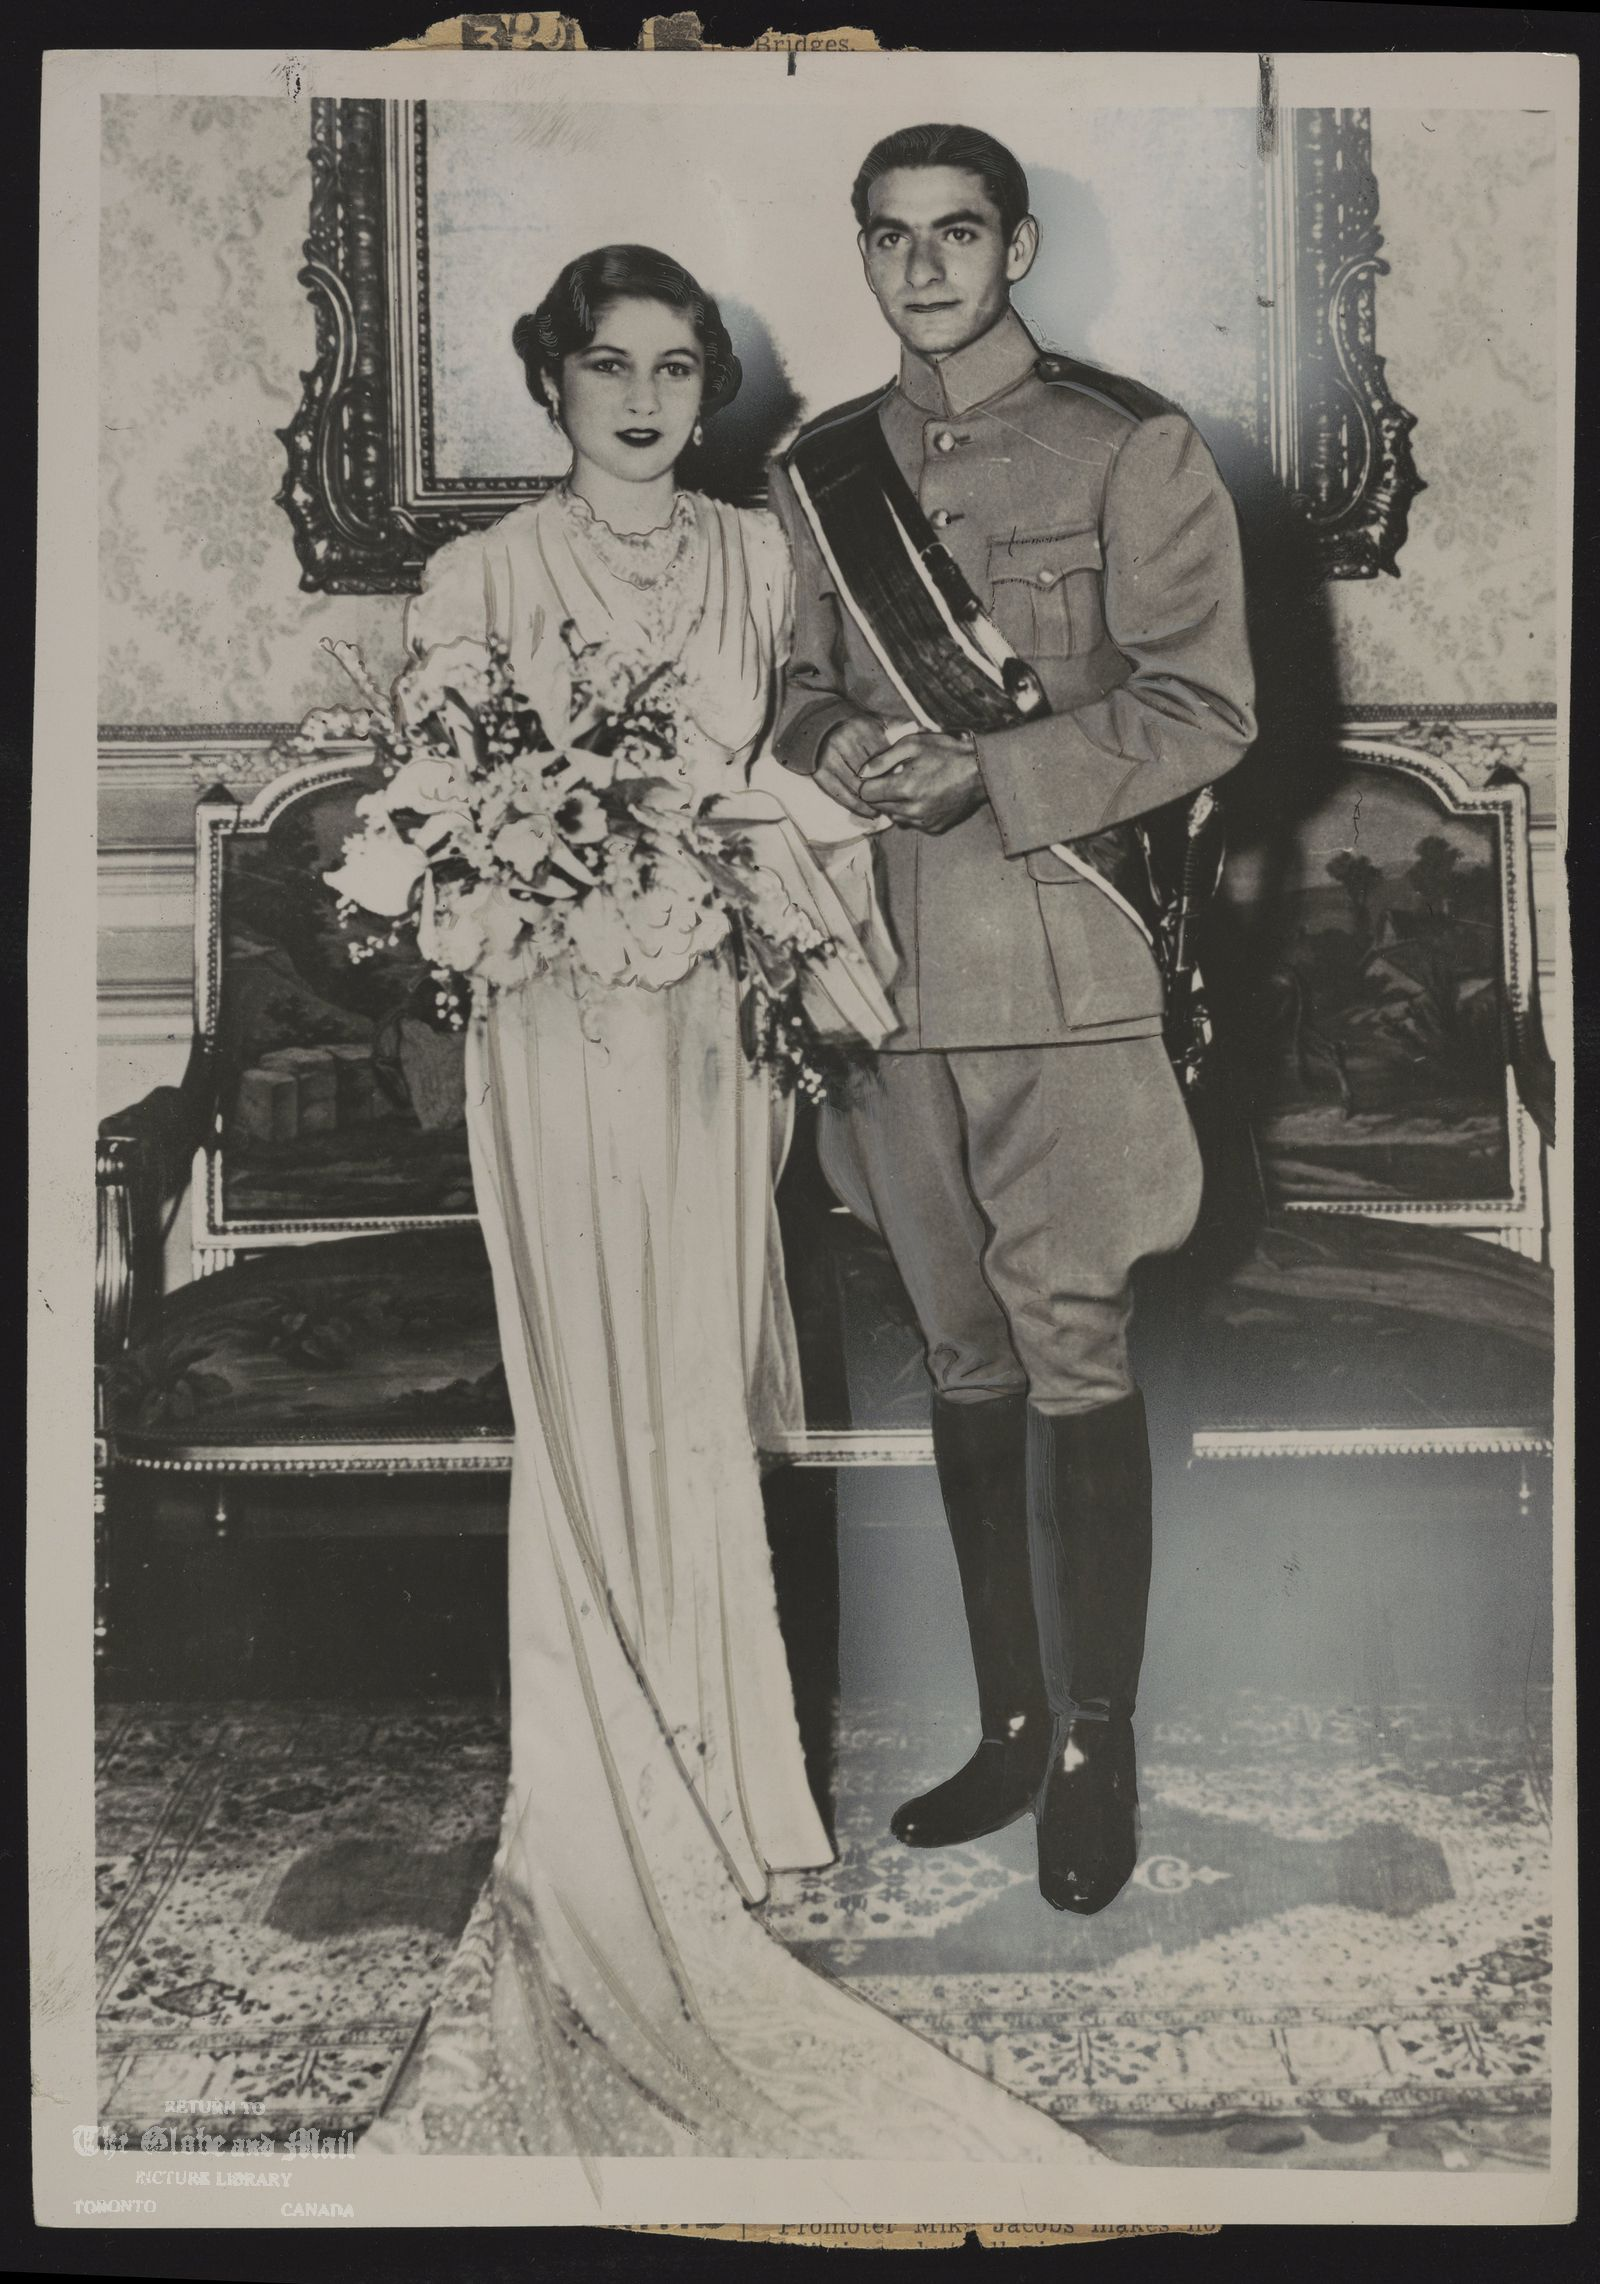 ROYAL FAMILY Iran Shah Reza Pahlavi The Shahpur Mohammed Riza, 19-year-old Crown Prince of Iran, and his bride, Princess Fawzia, 17-year-old sister of King Farouk of Egypt.